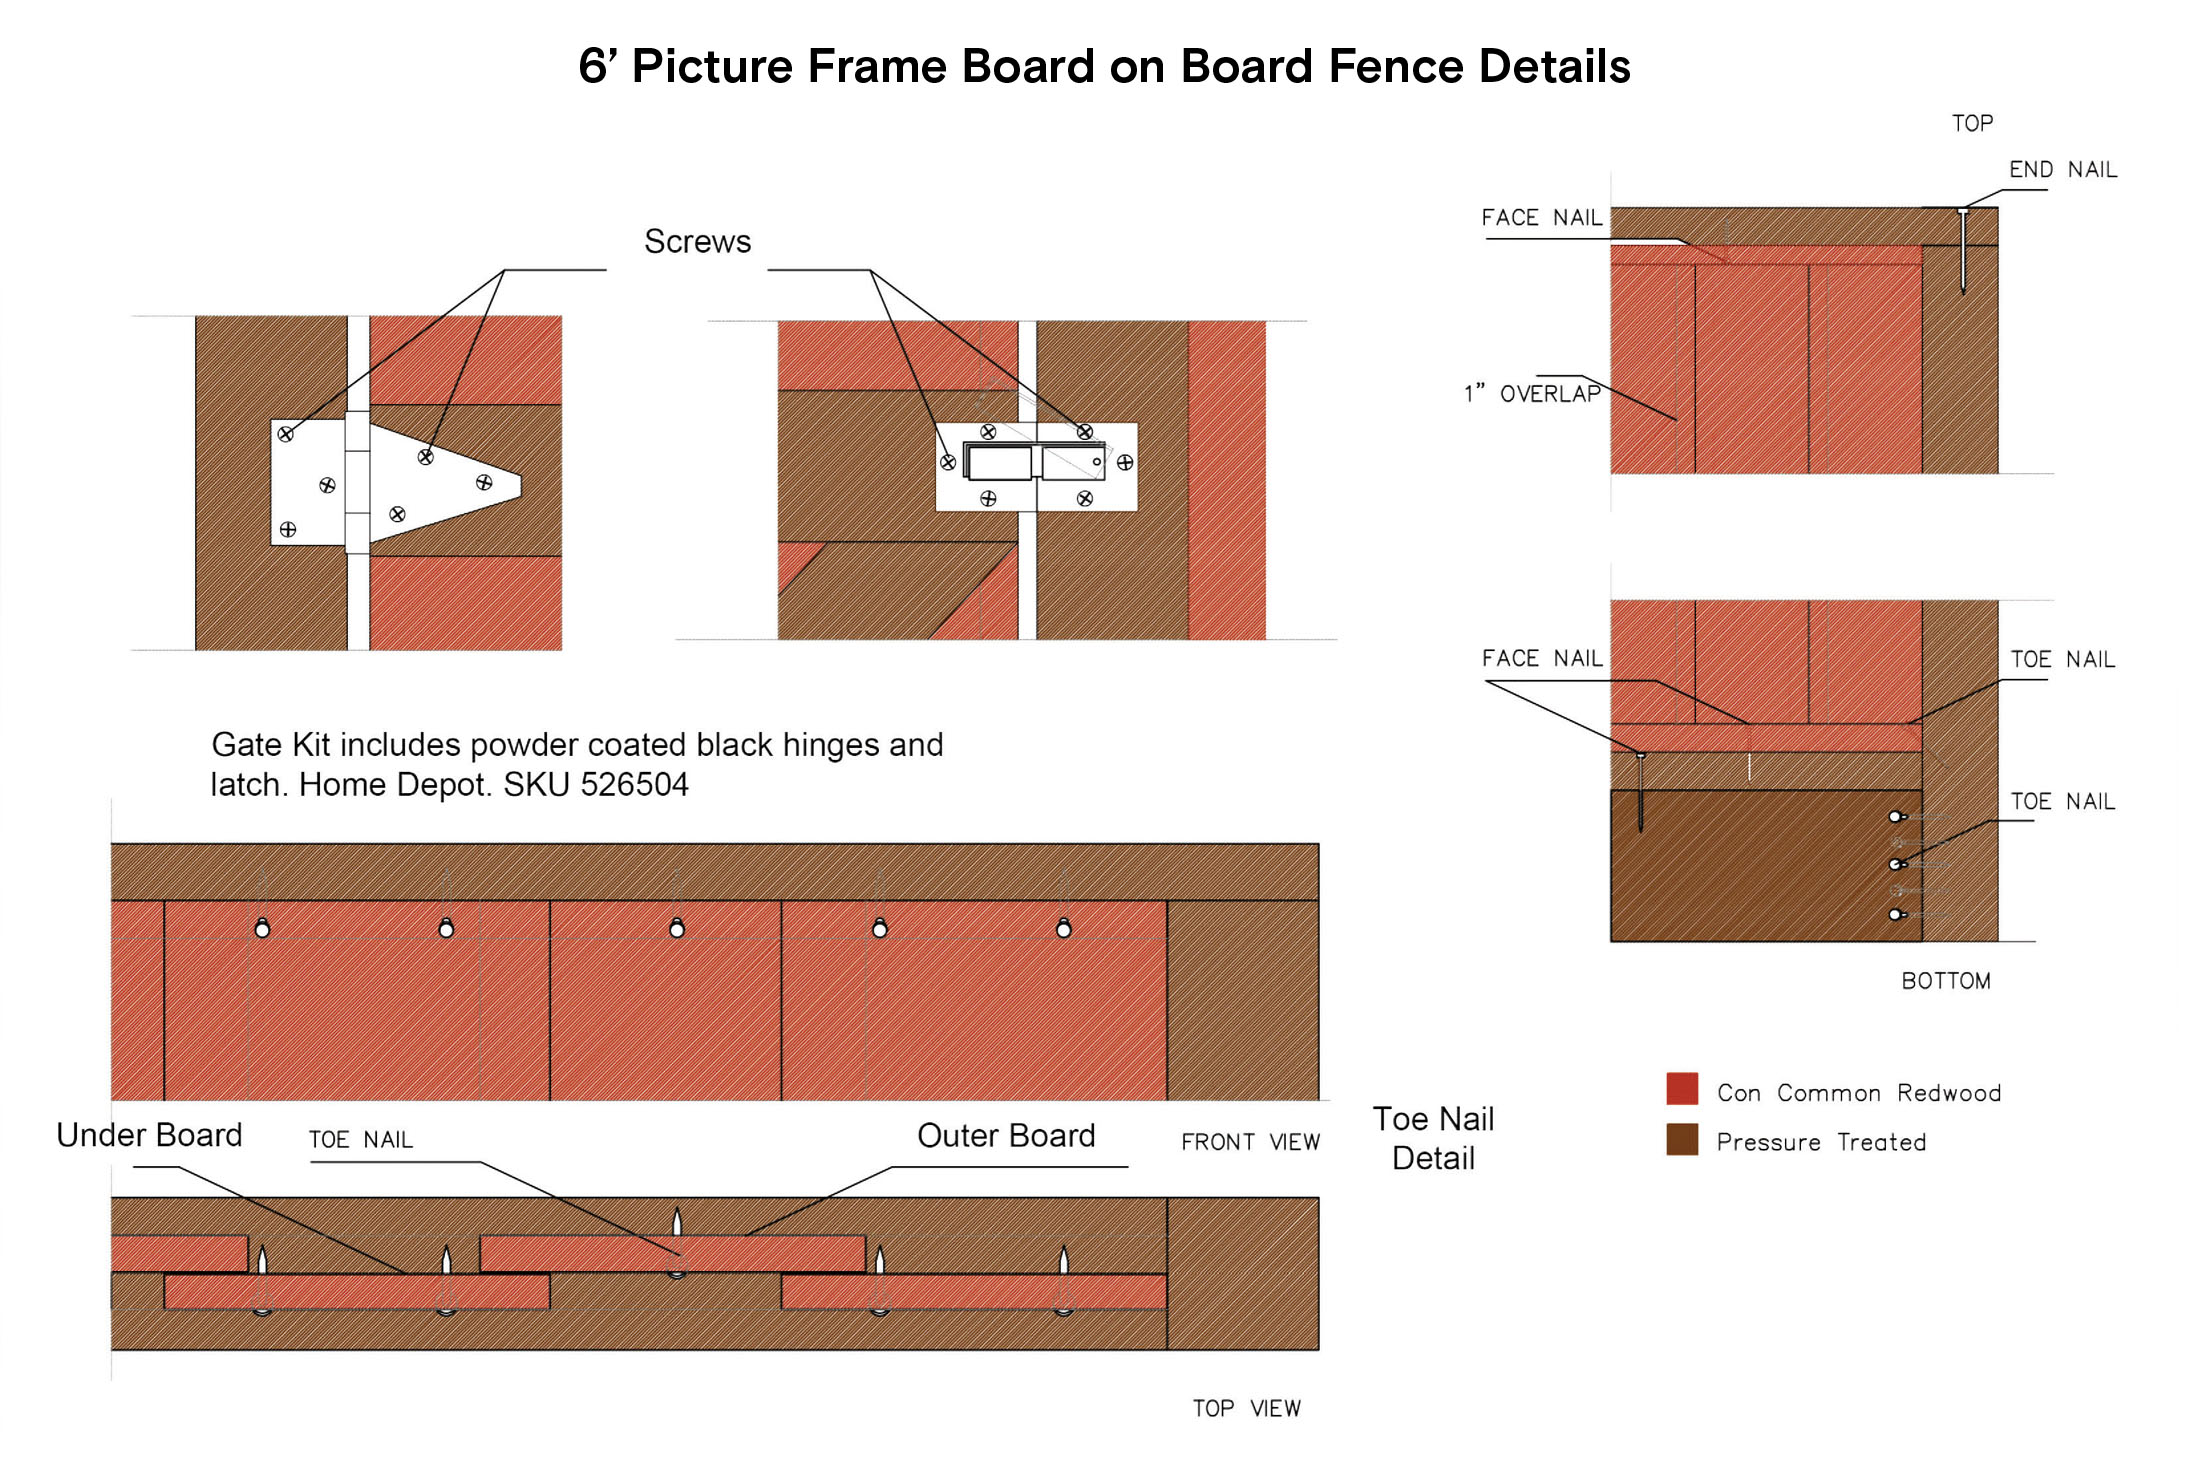 6' Picture Frame Board on Board Fence Details